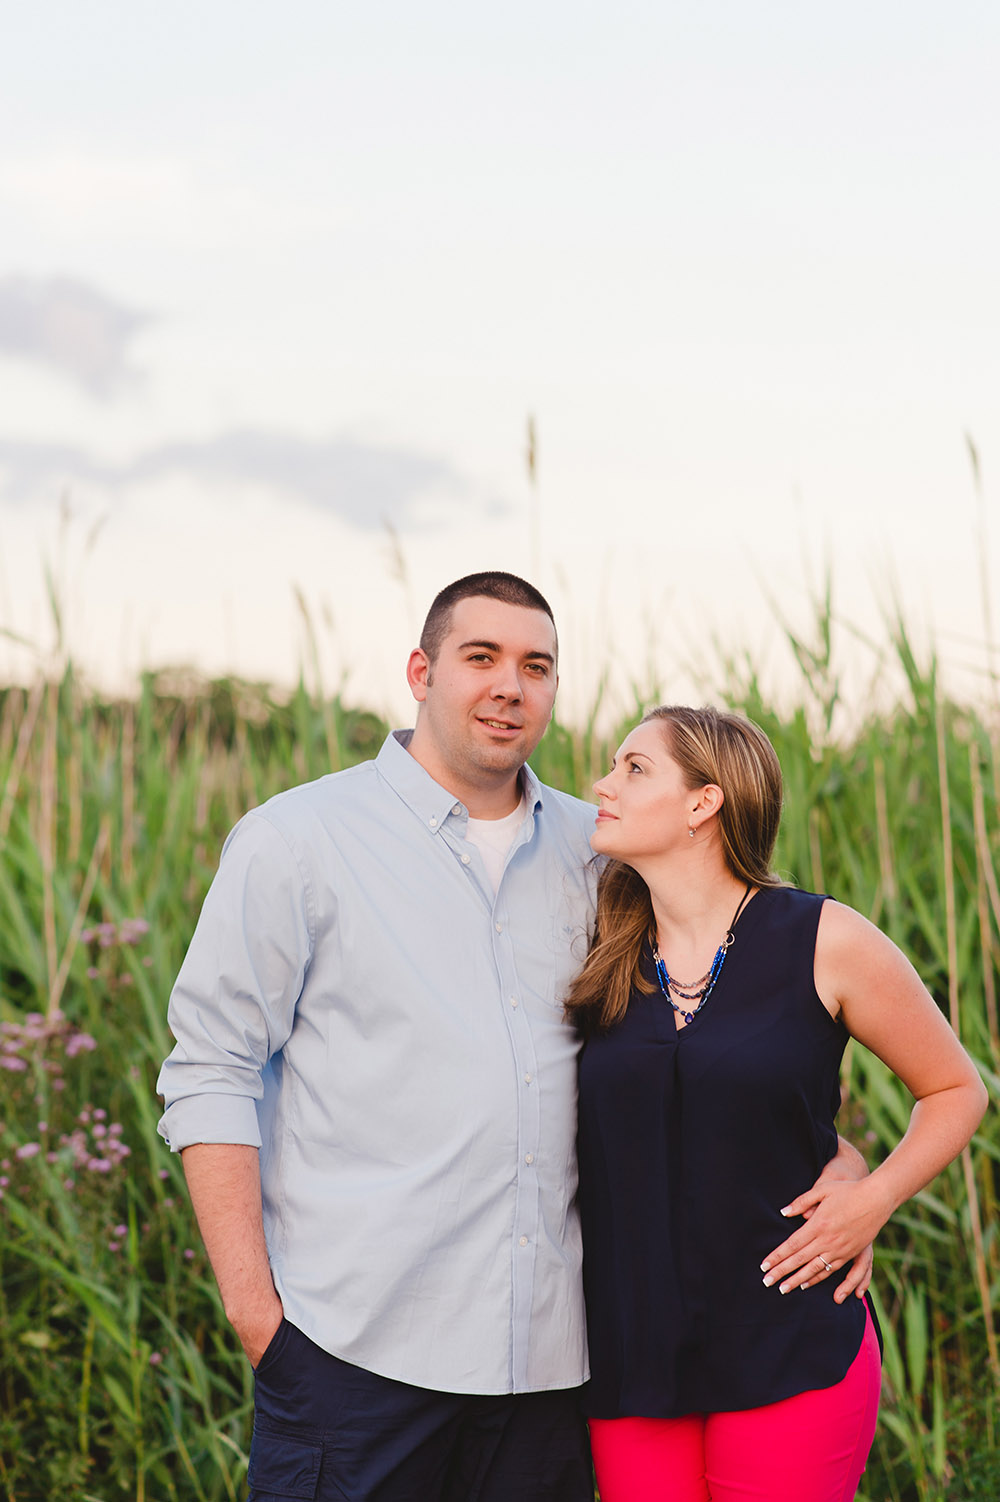 ct-engagement-photos-greg-lewis-photography-21